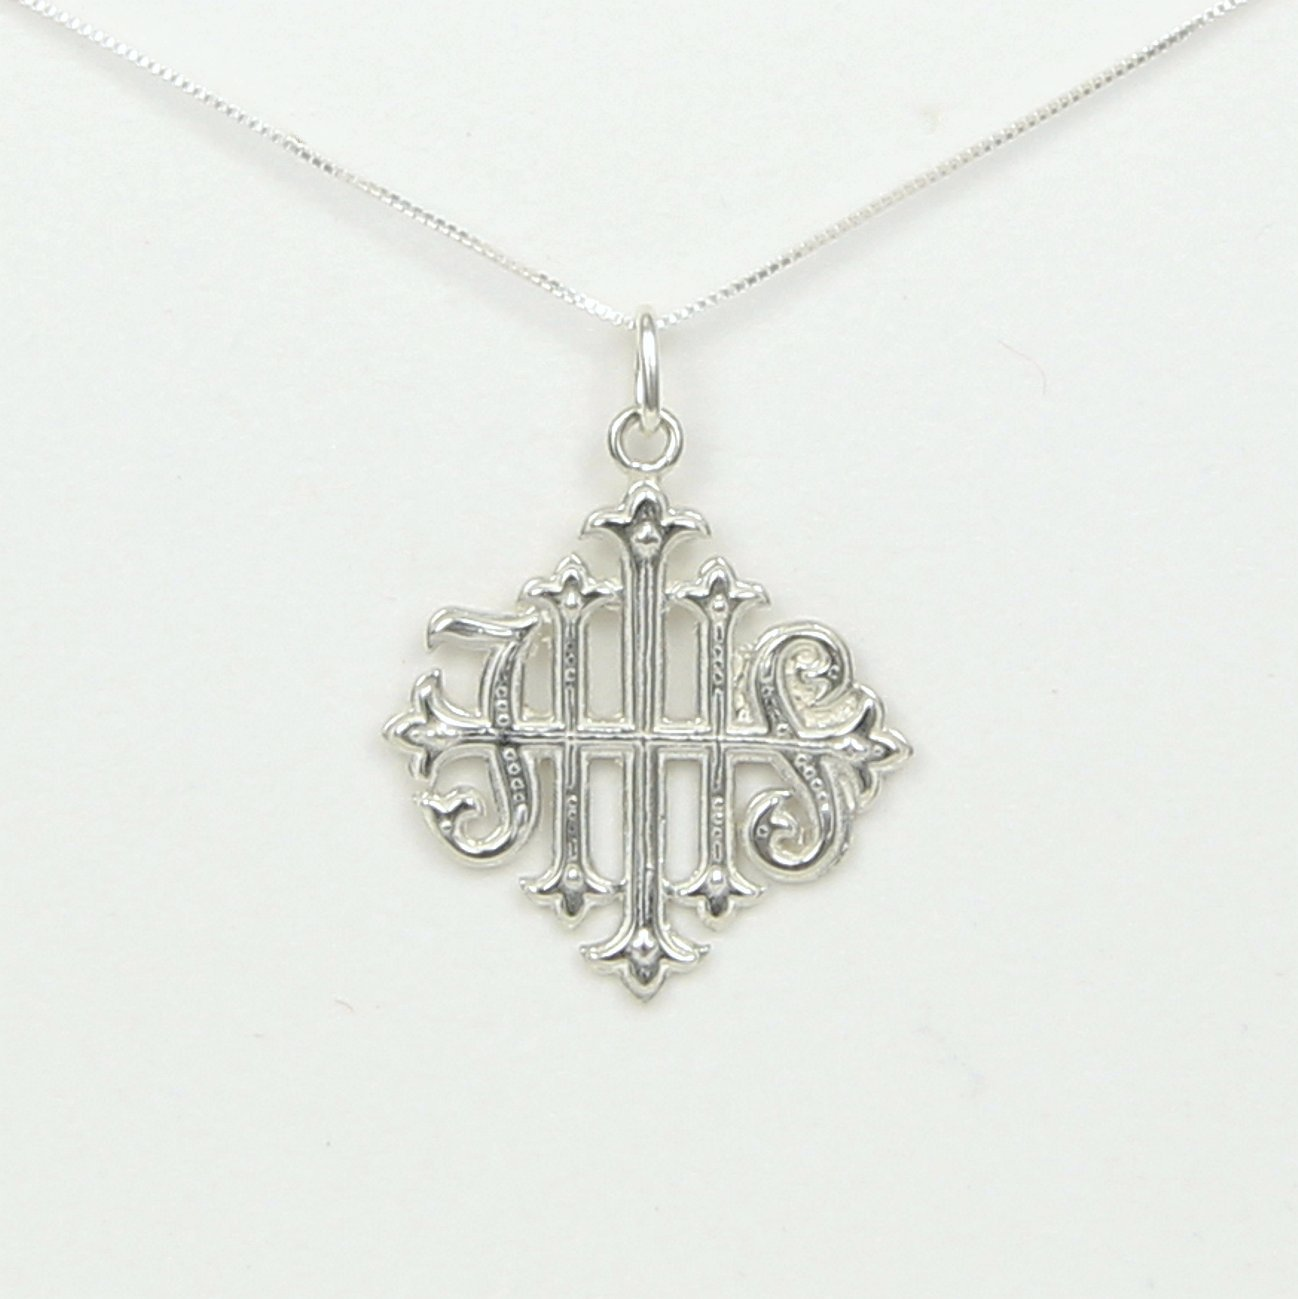 Amazon christogram ihs cross ancient christian symbol amazon christogram ihs cross ancient christian symbol latin for jesus savior of men story card sterling silver usa handmade biocorpaavc Choice Image